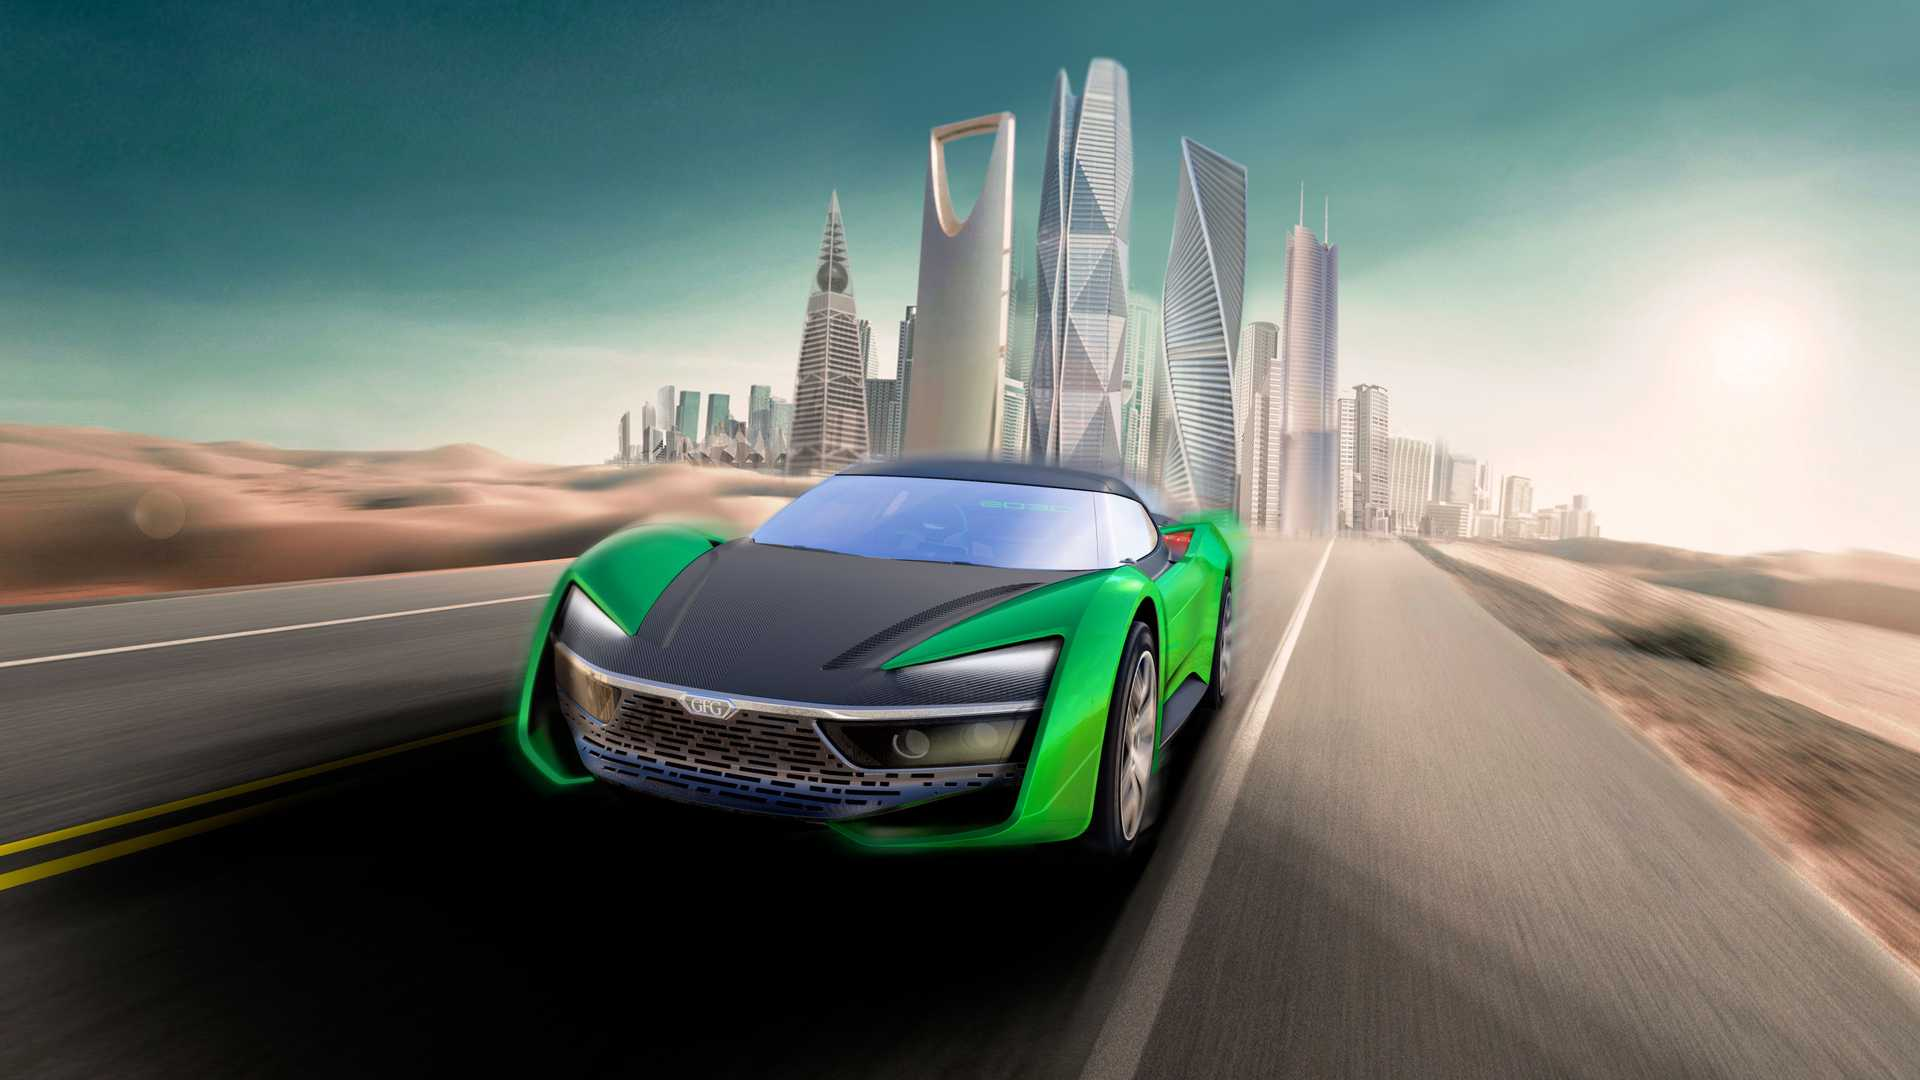 Giorgetto Giugiaro himself has designed the off-road-capable supercar to show his vision on what such vehicles may look like in the 2030s.